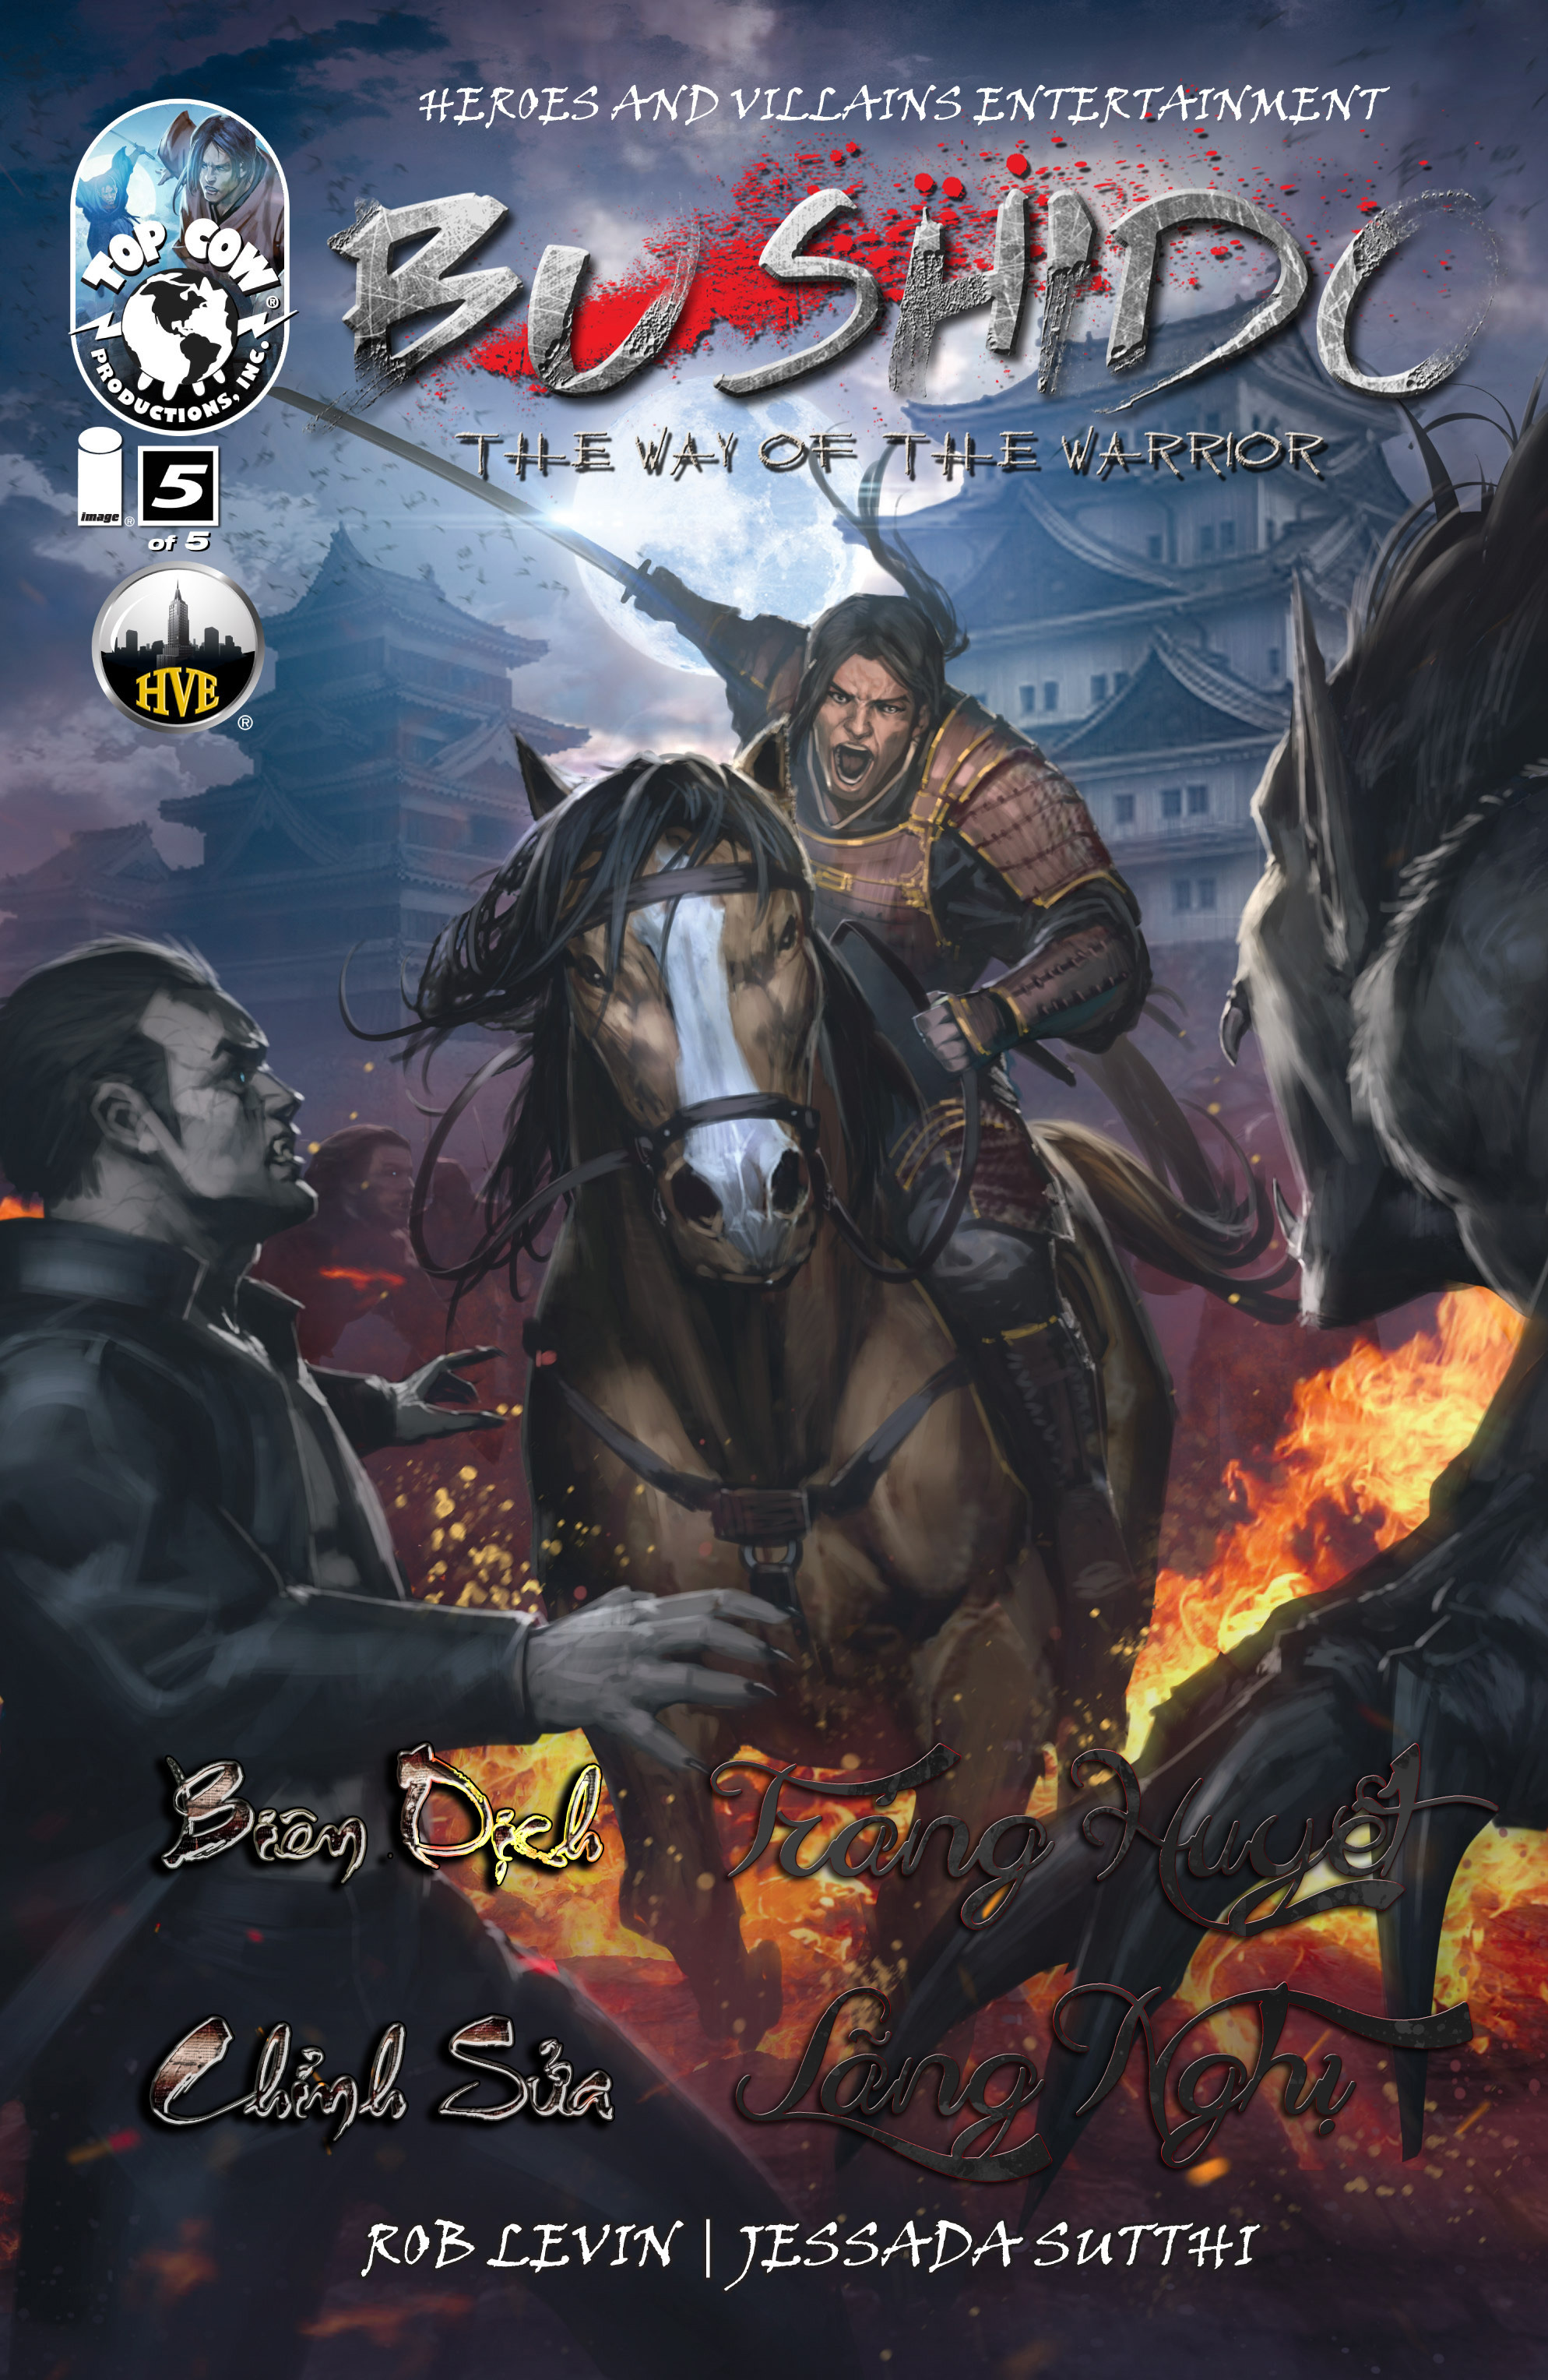 BUSHIDO - THE WAY OF THE WARRIOR chapter 5 - end trang 1